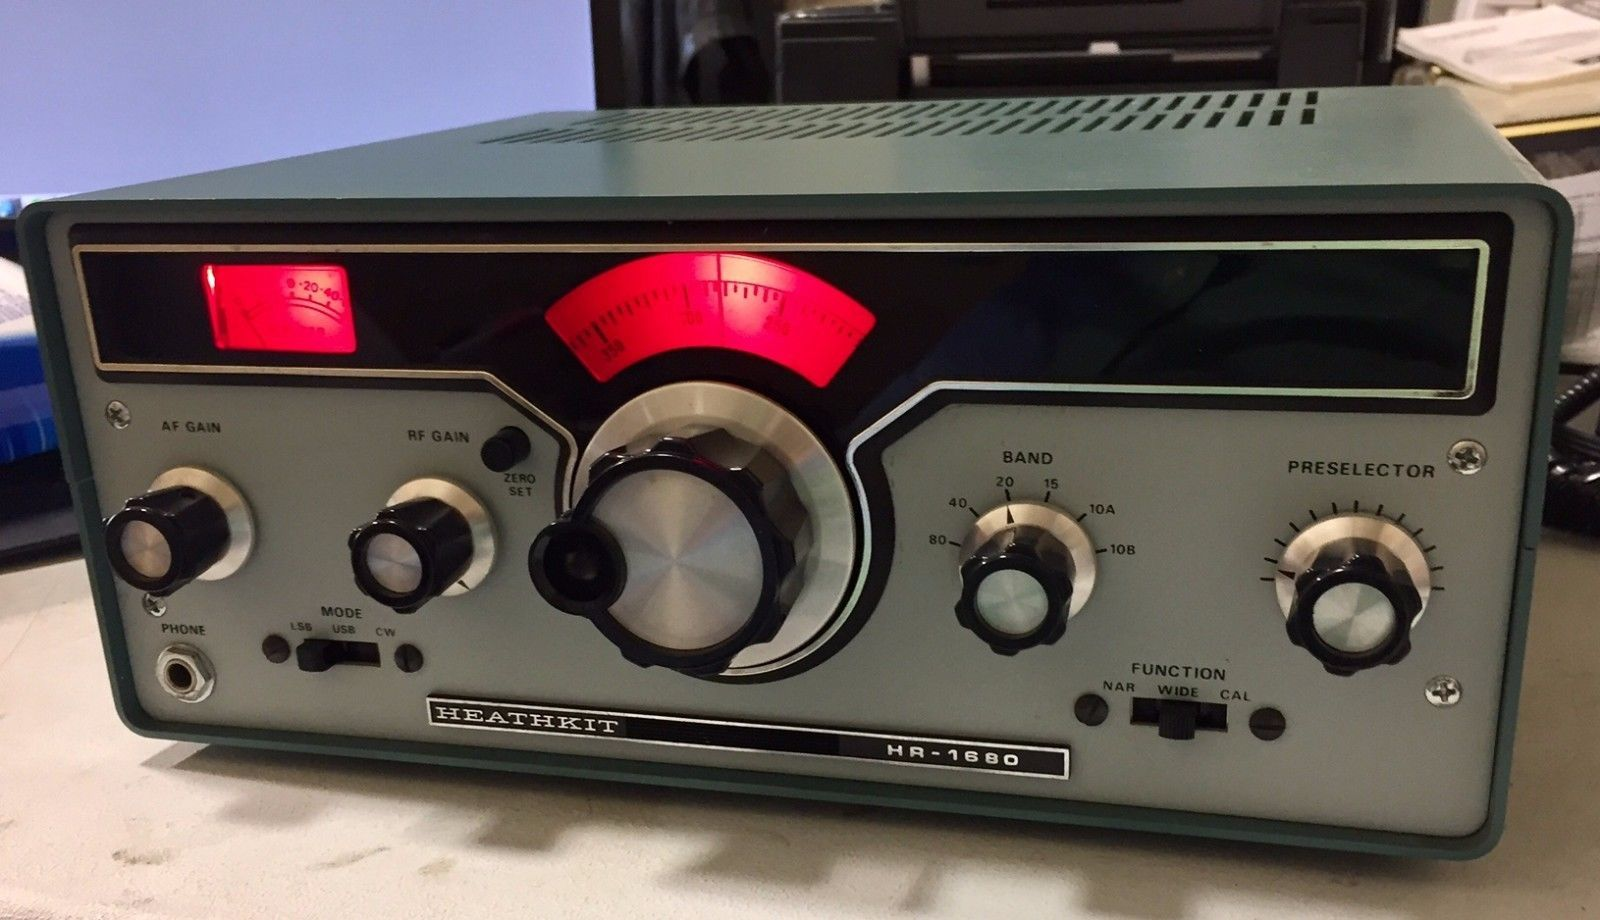 Heathkit HR-1680 SWL Shortwave Receiver in exceptional condition | eBay